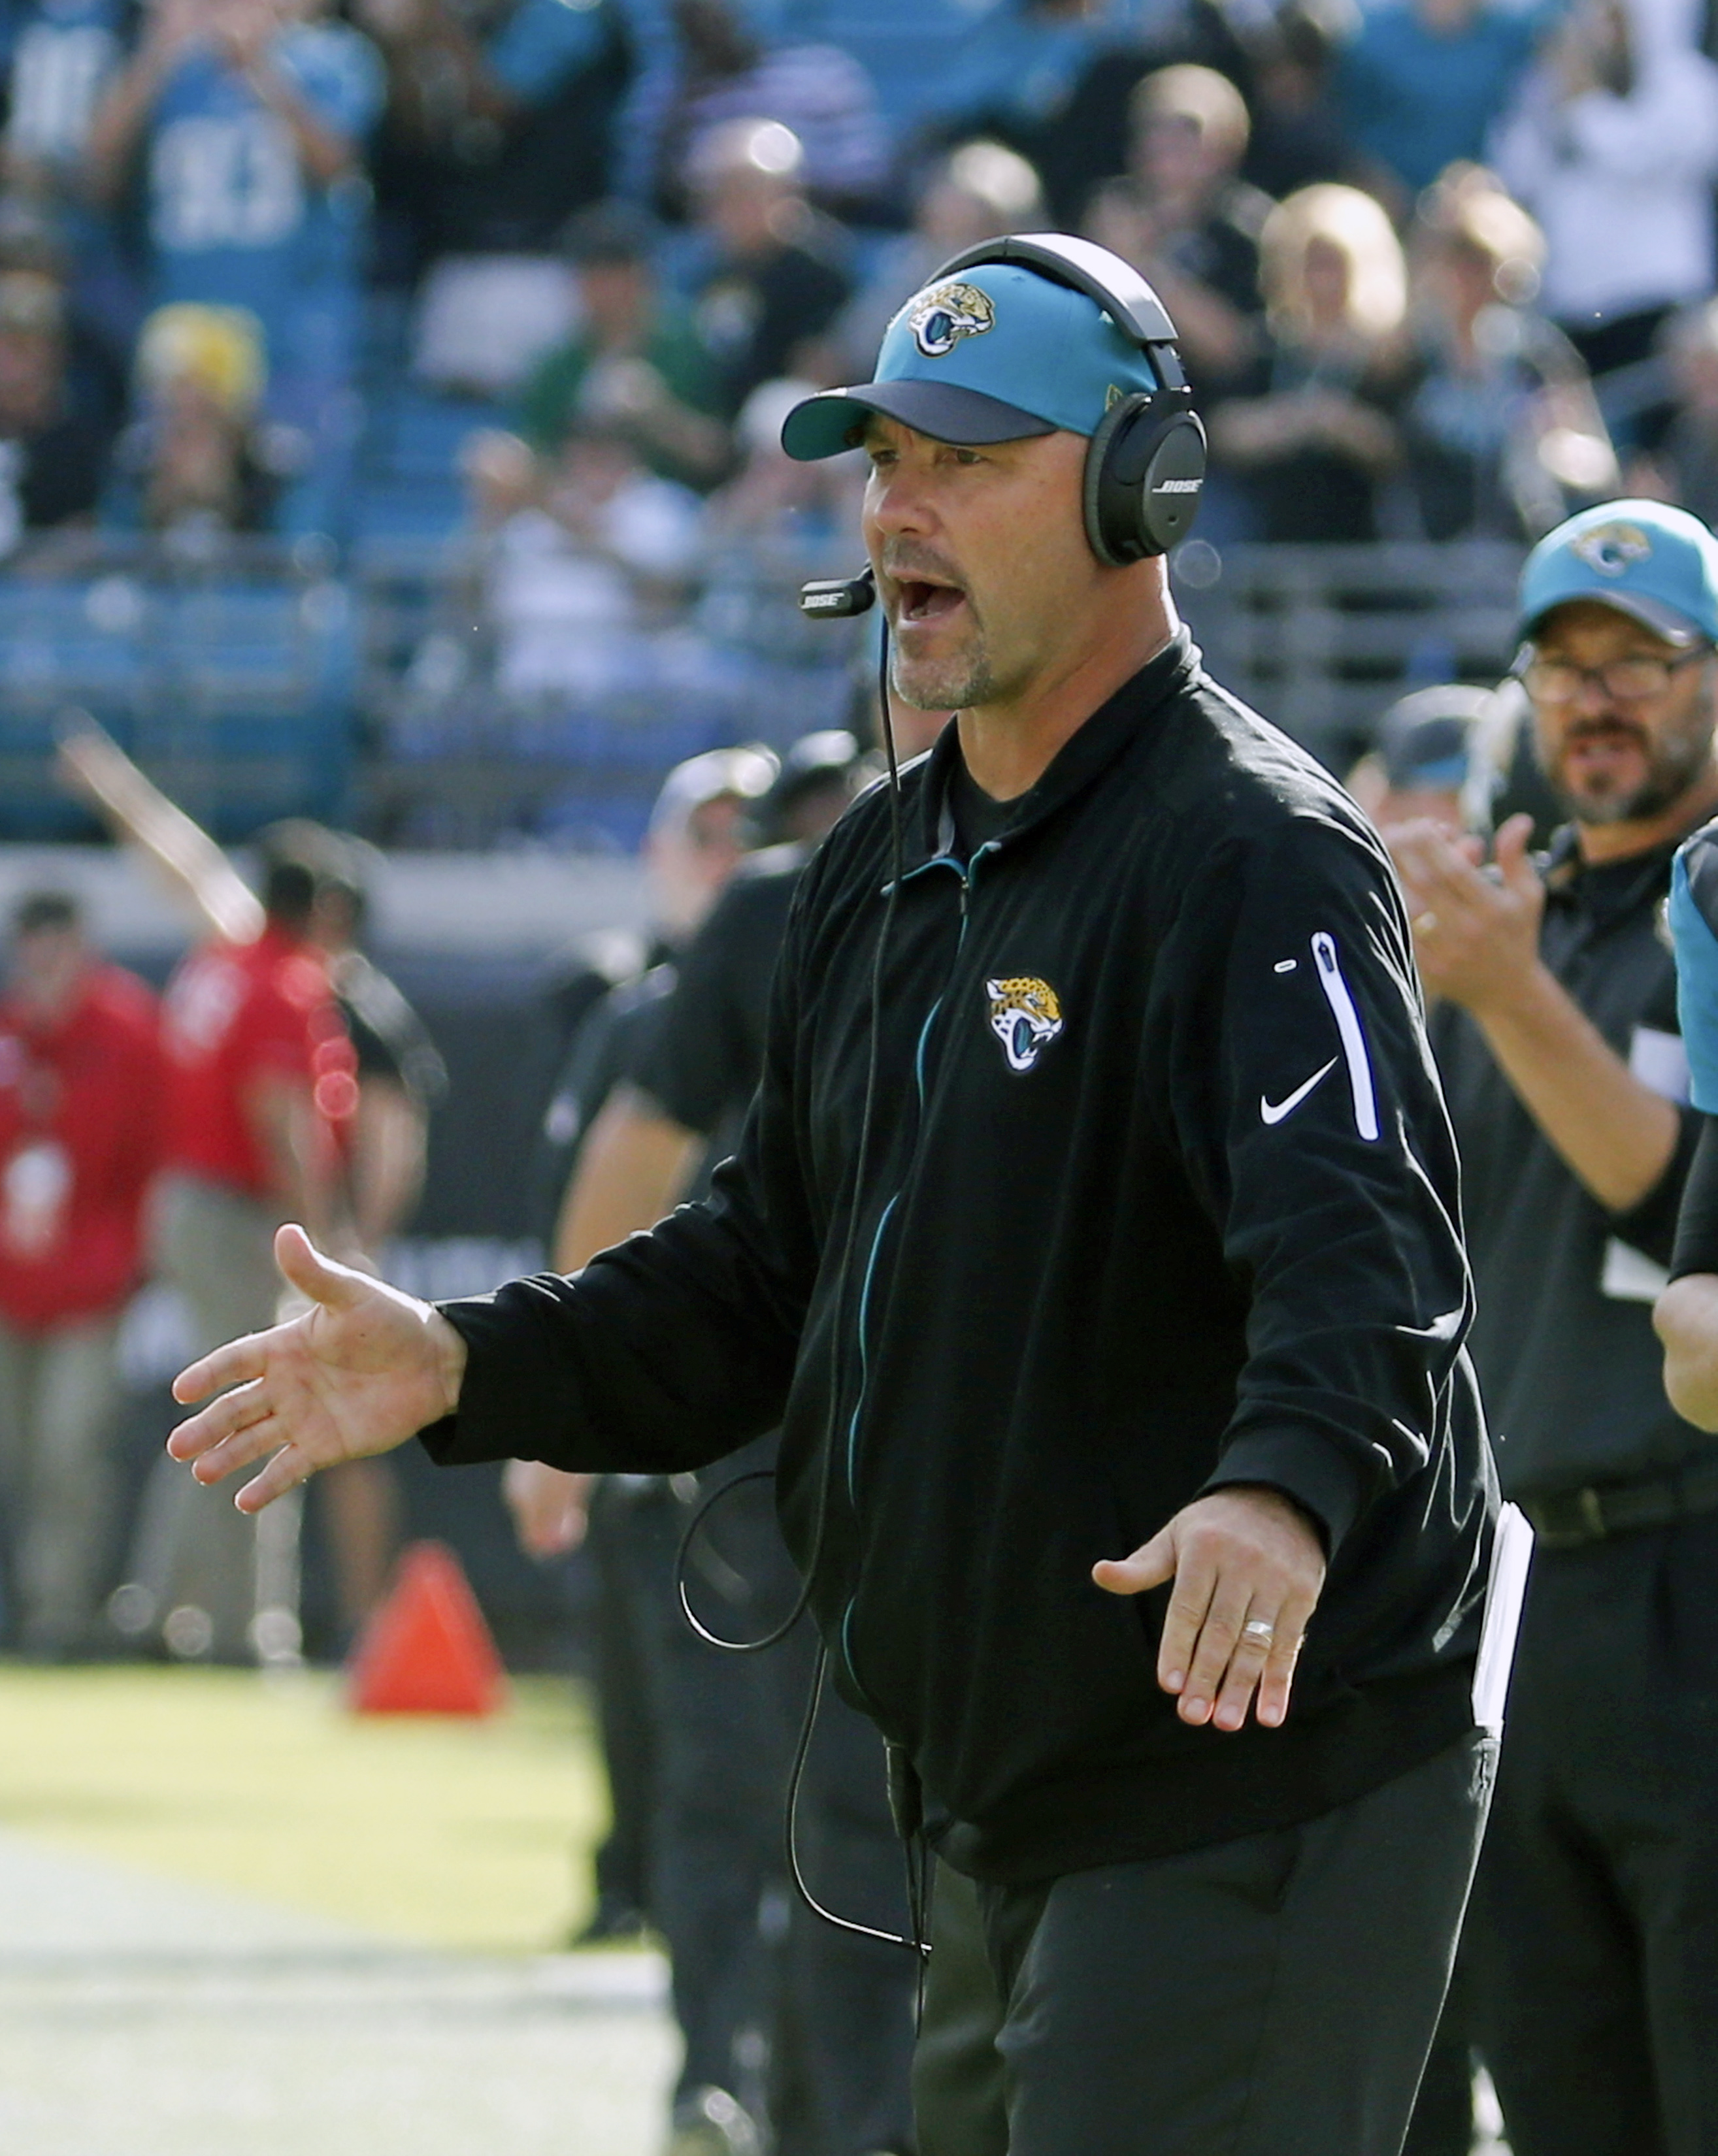 Jacksonville Jaguars head coach Gus Bradley encourages hi players during the second half of an NFL football game against the Atlanta Falcons in Jacksonville, Fla., Sunday, Dec. 20, 2015. The Jaguars allowed 537 yards in a 38-27 loss at New Orleans on Sund